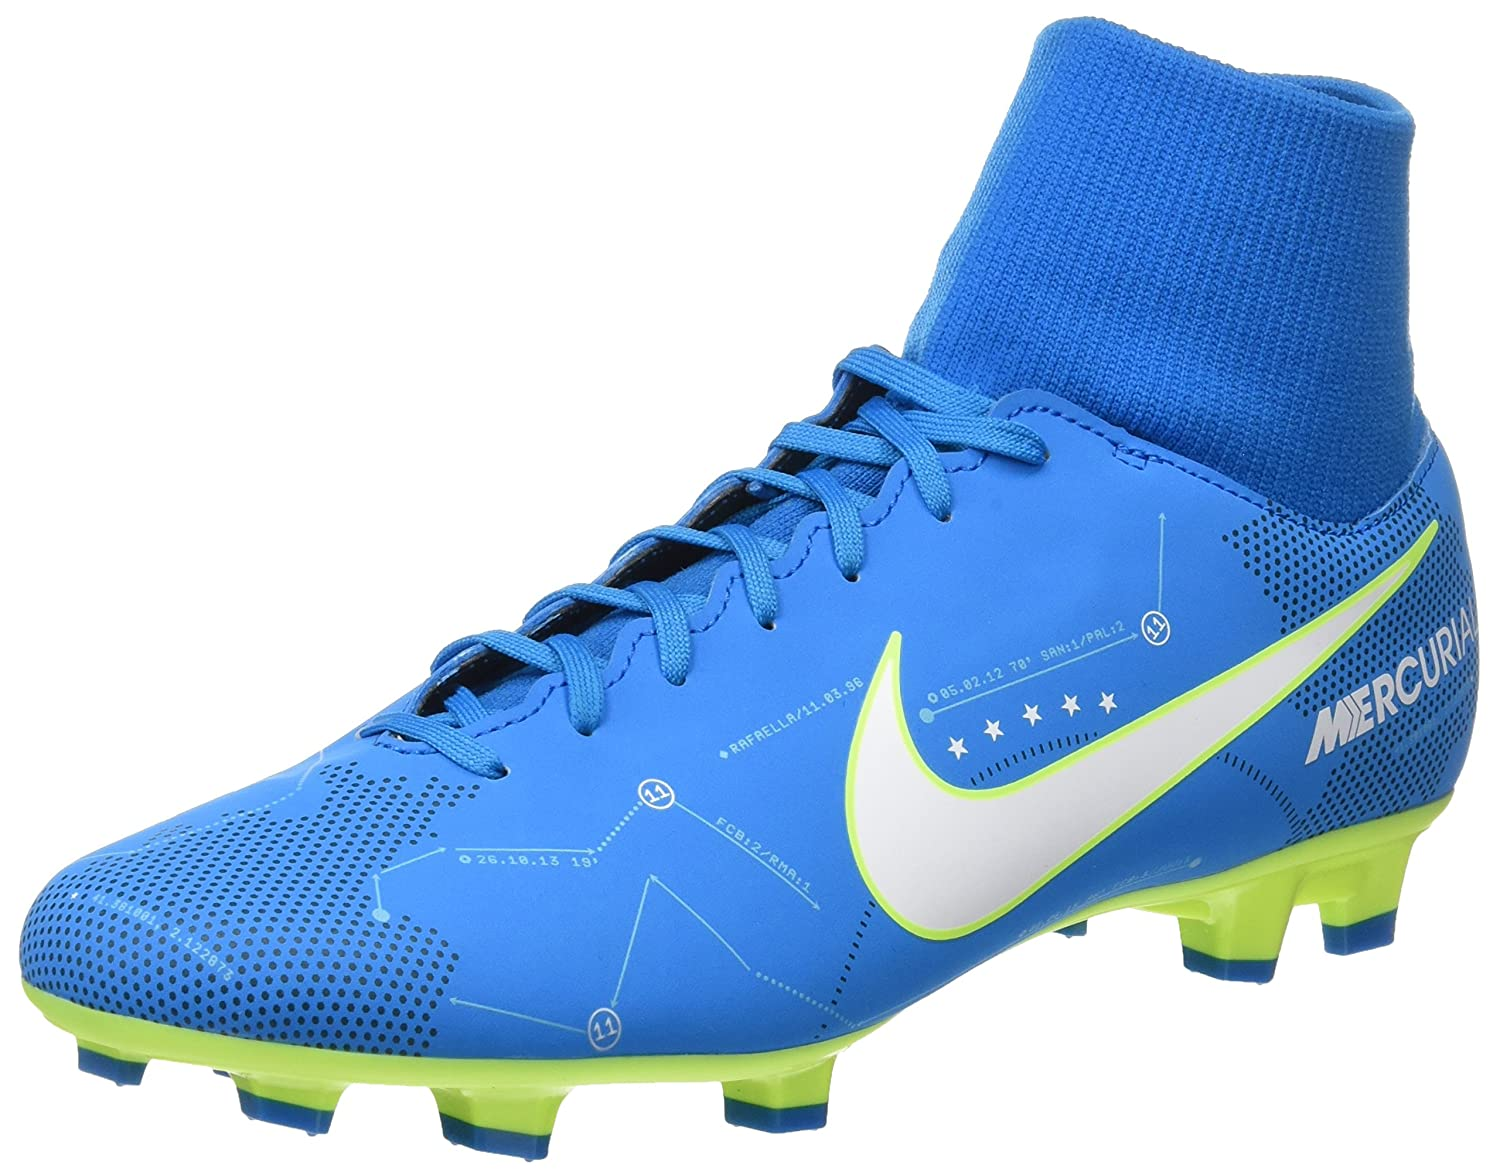 innovative design 14fd9 93c36 Amazon.com   NIKE Mercurial Victory VI DF NJR FG Neymar 921506-400 Blue  Men s Soccer Cleats   Soccer